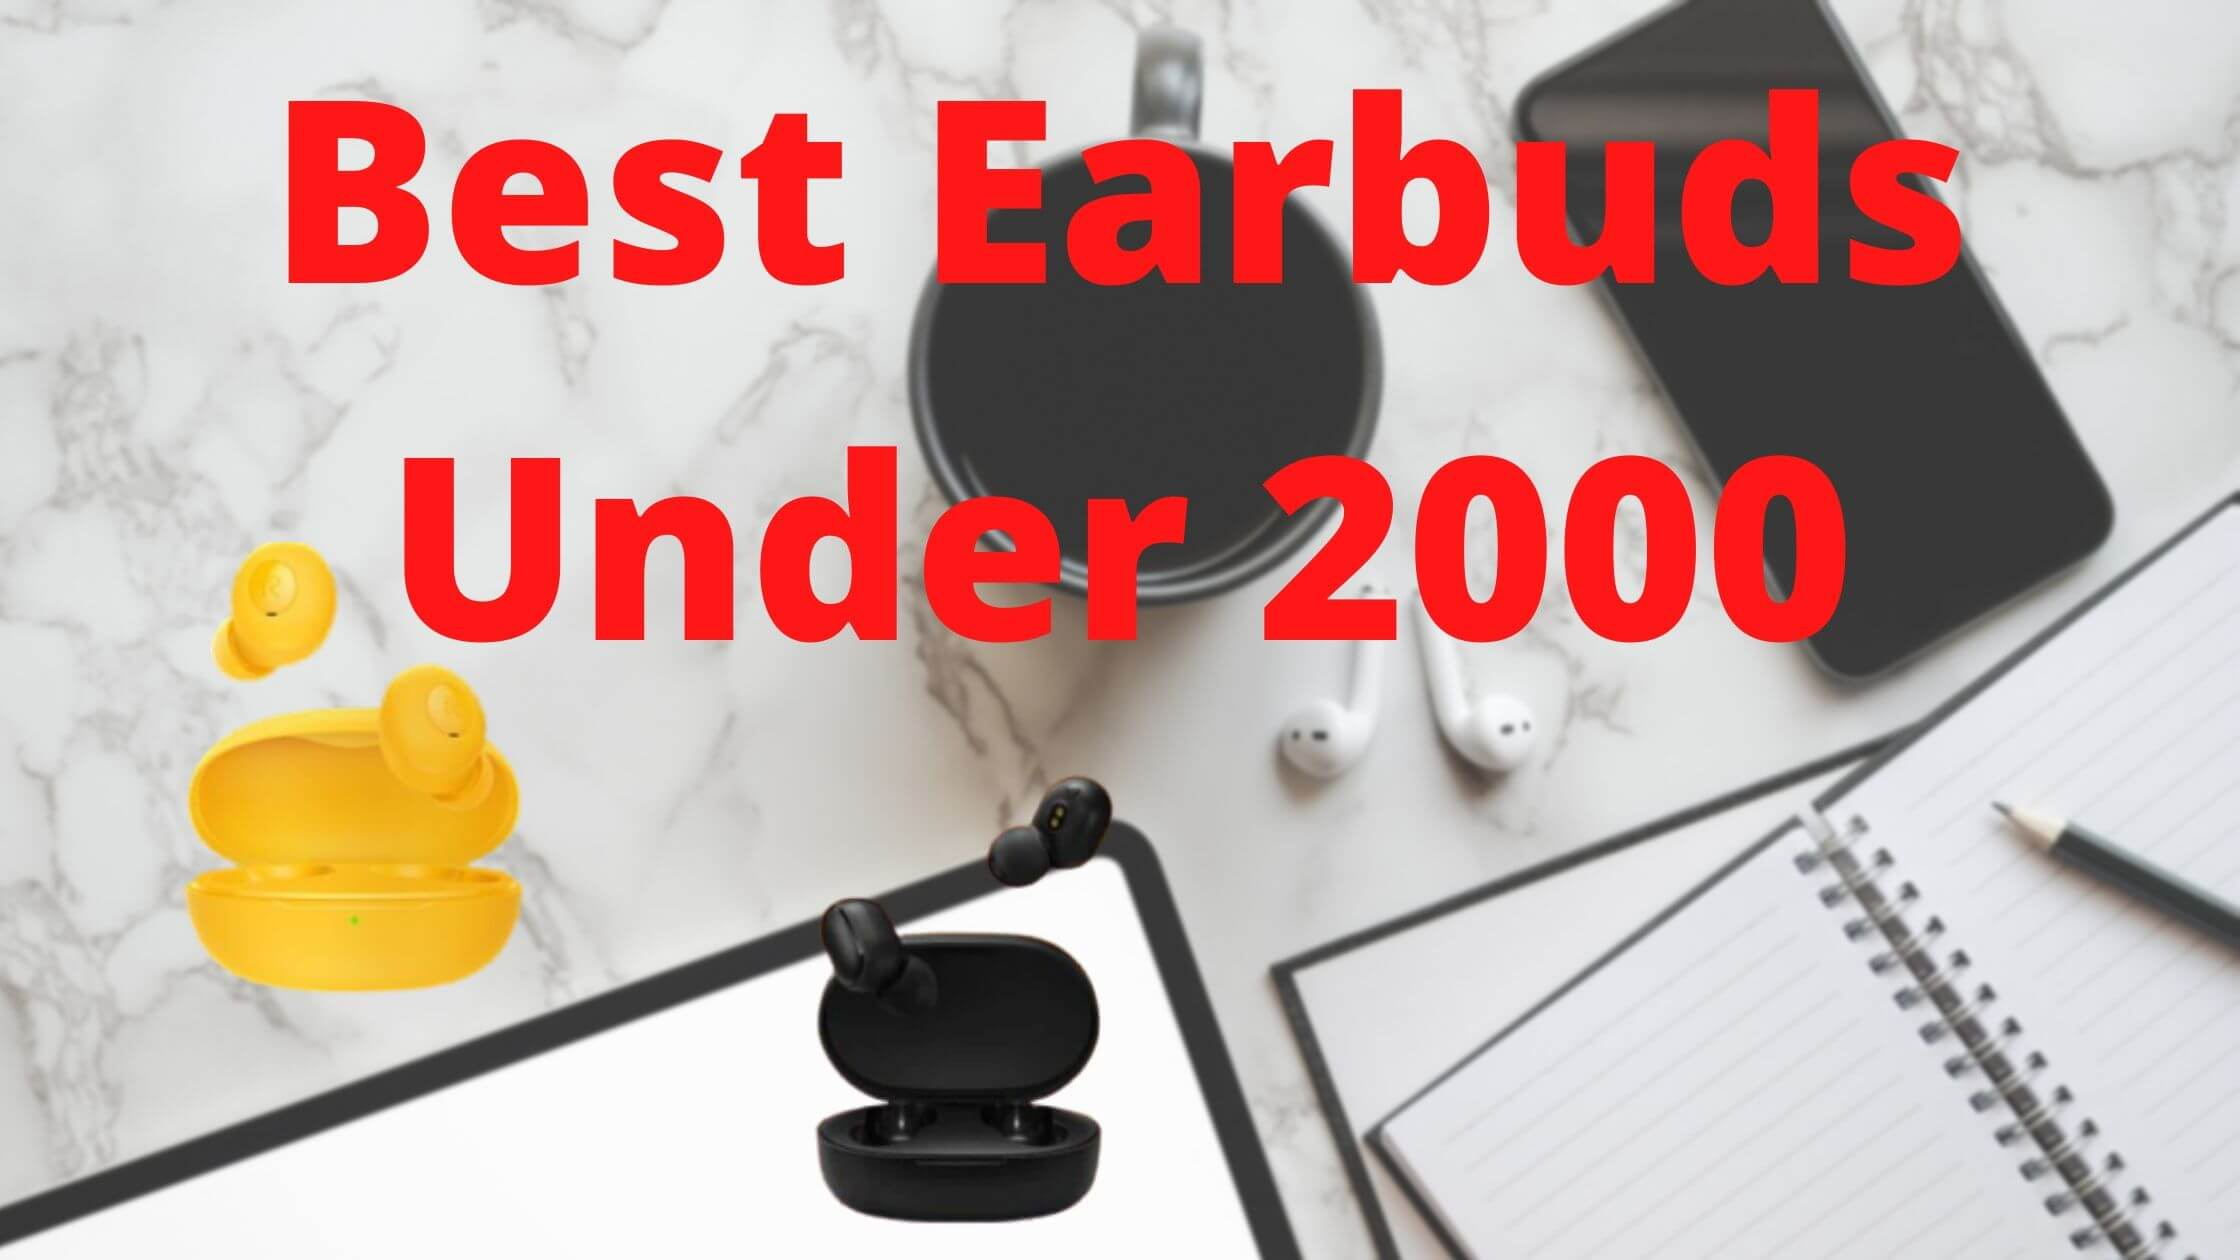 Best Earbuds Under 2000 in India